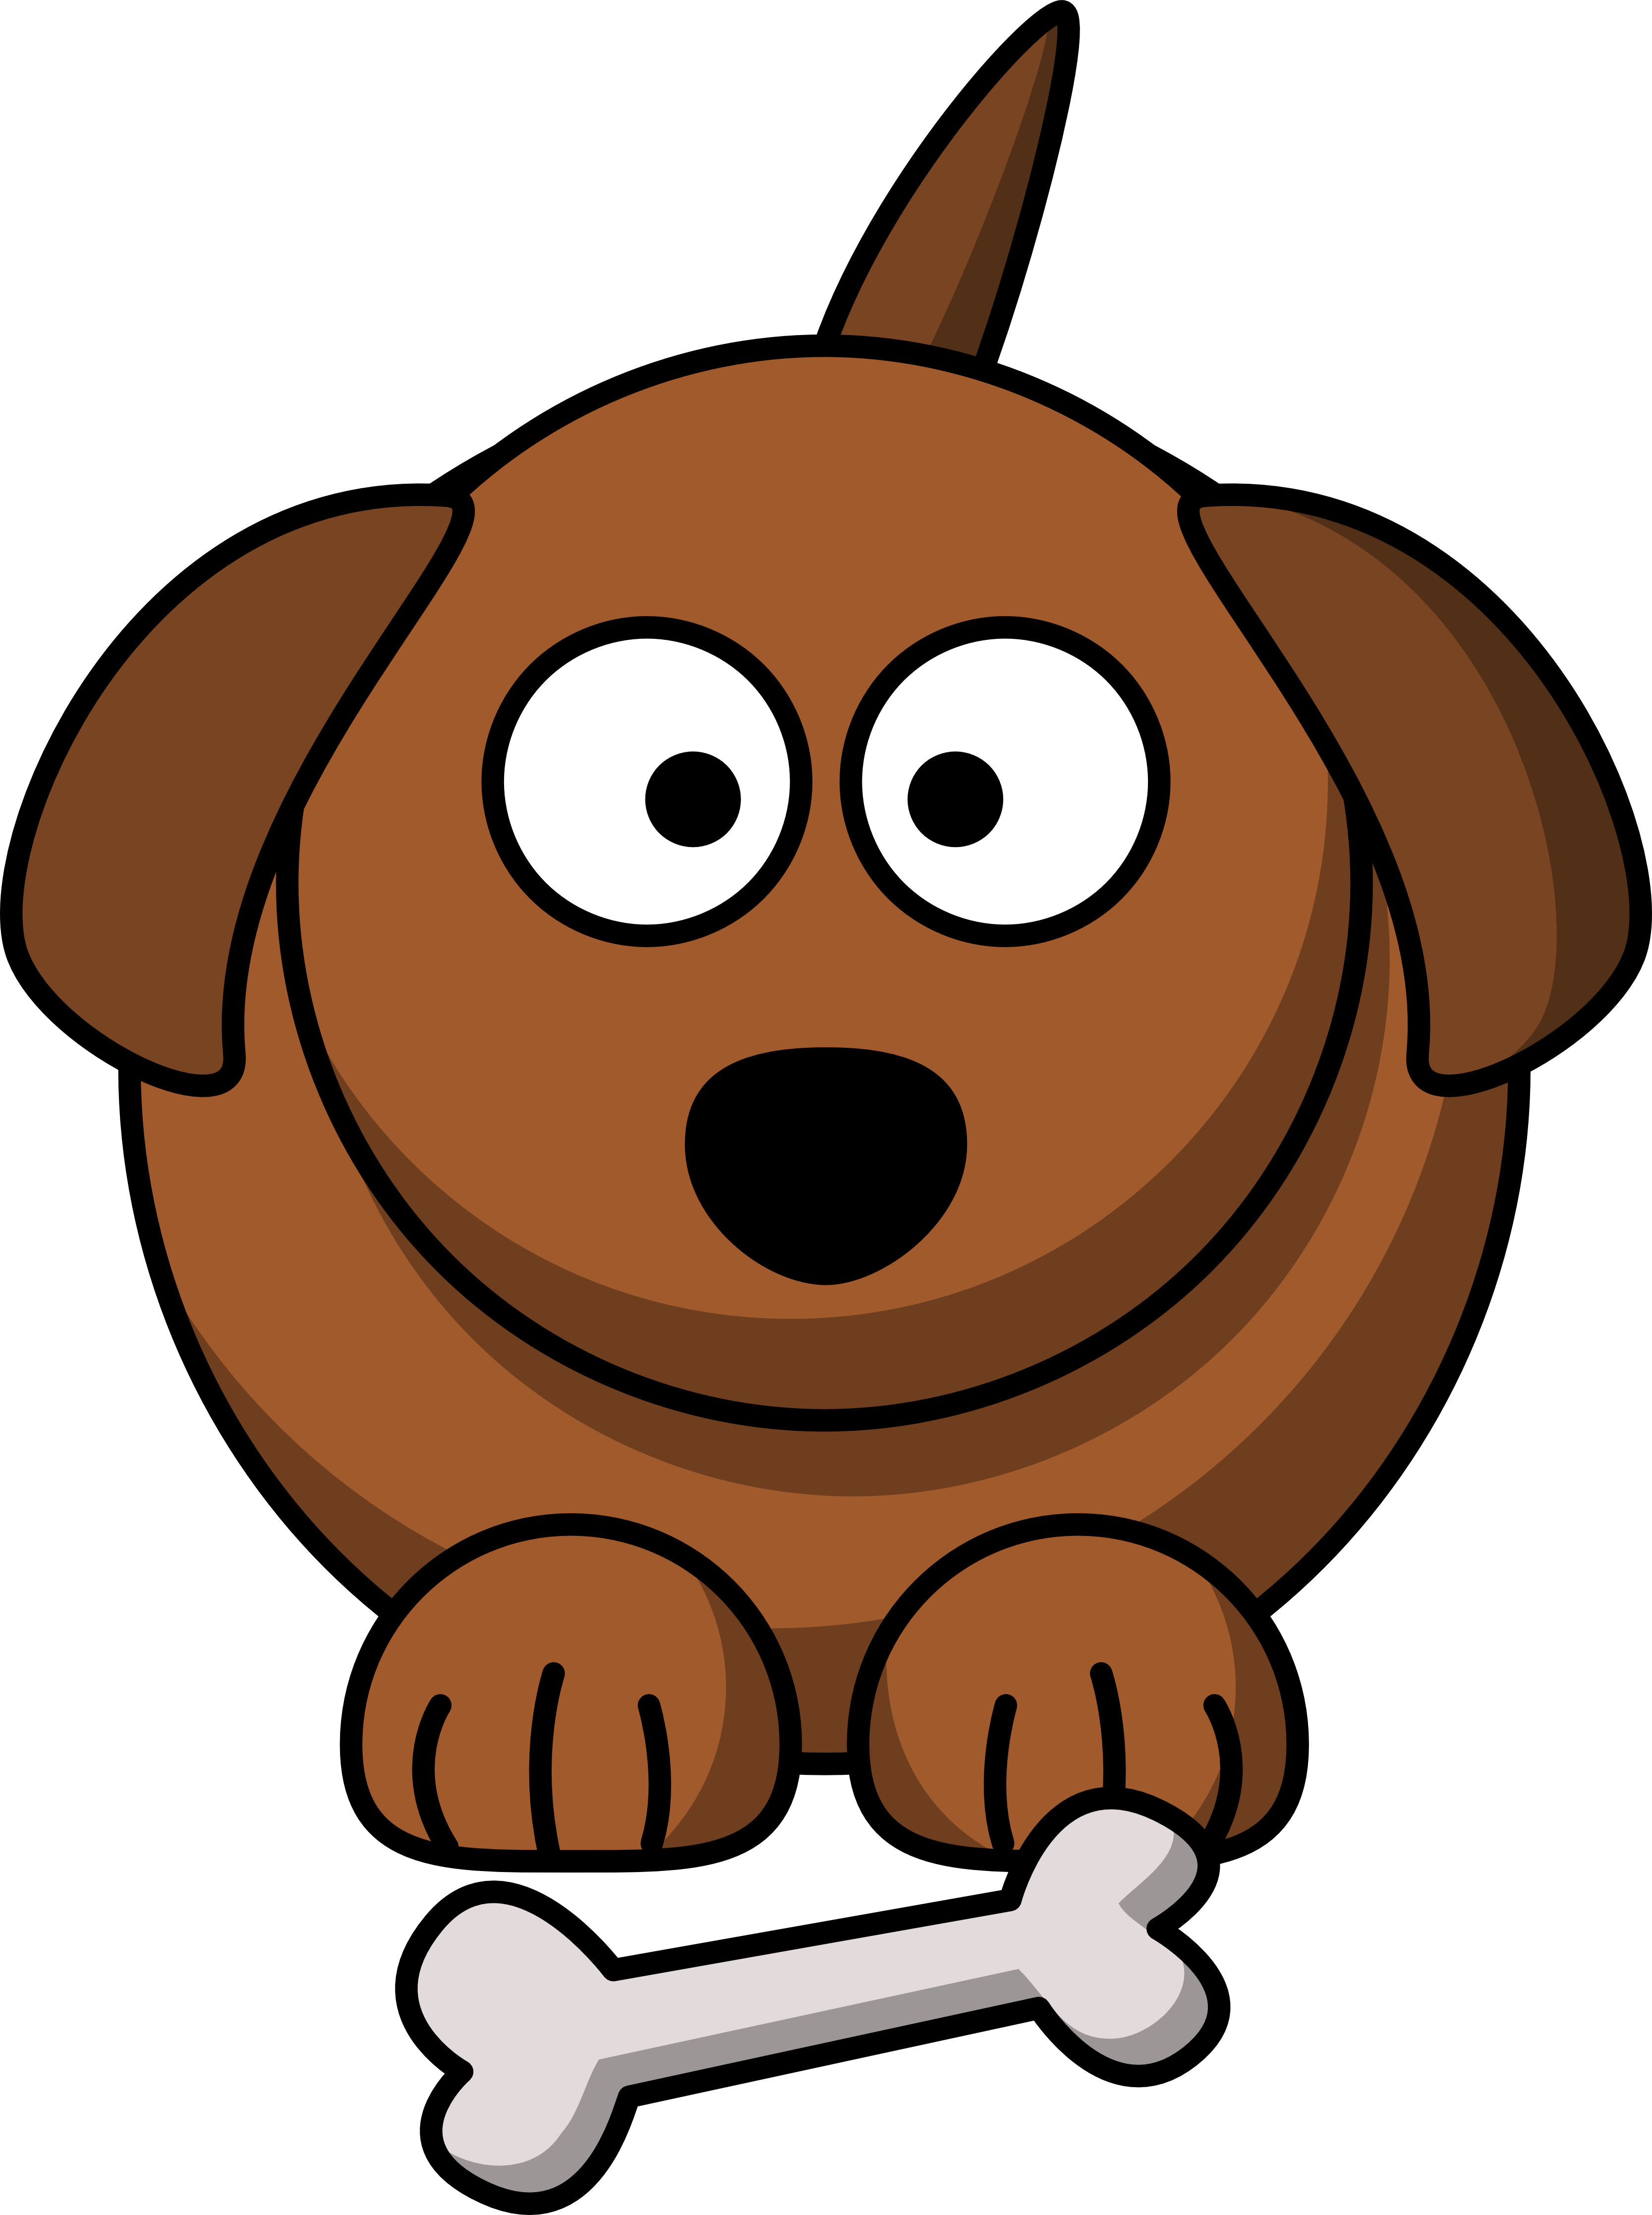 Dogs cartoon png. Free clipart of